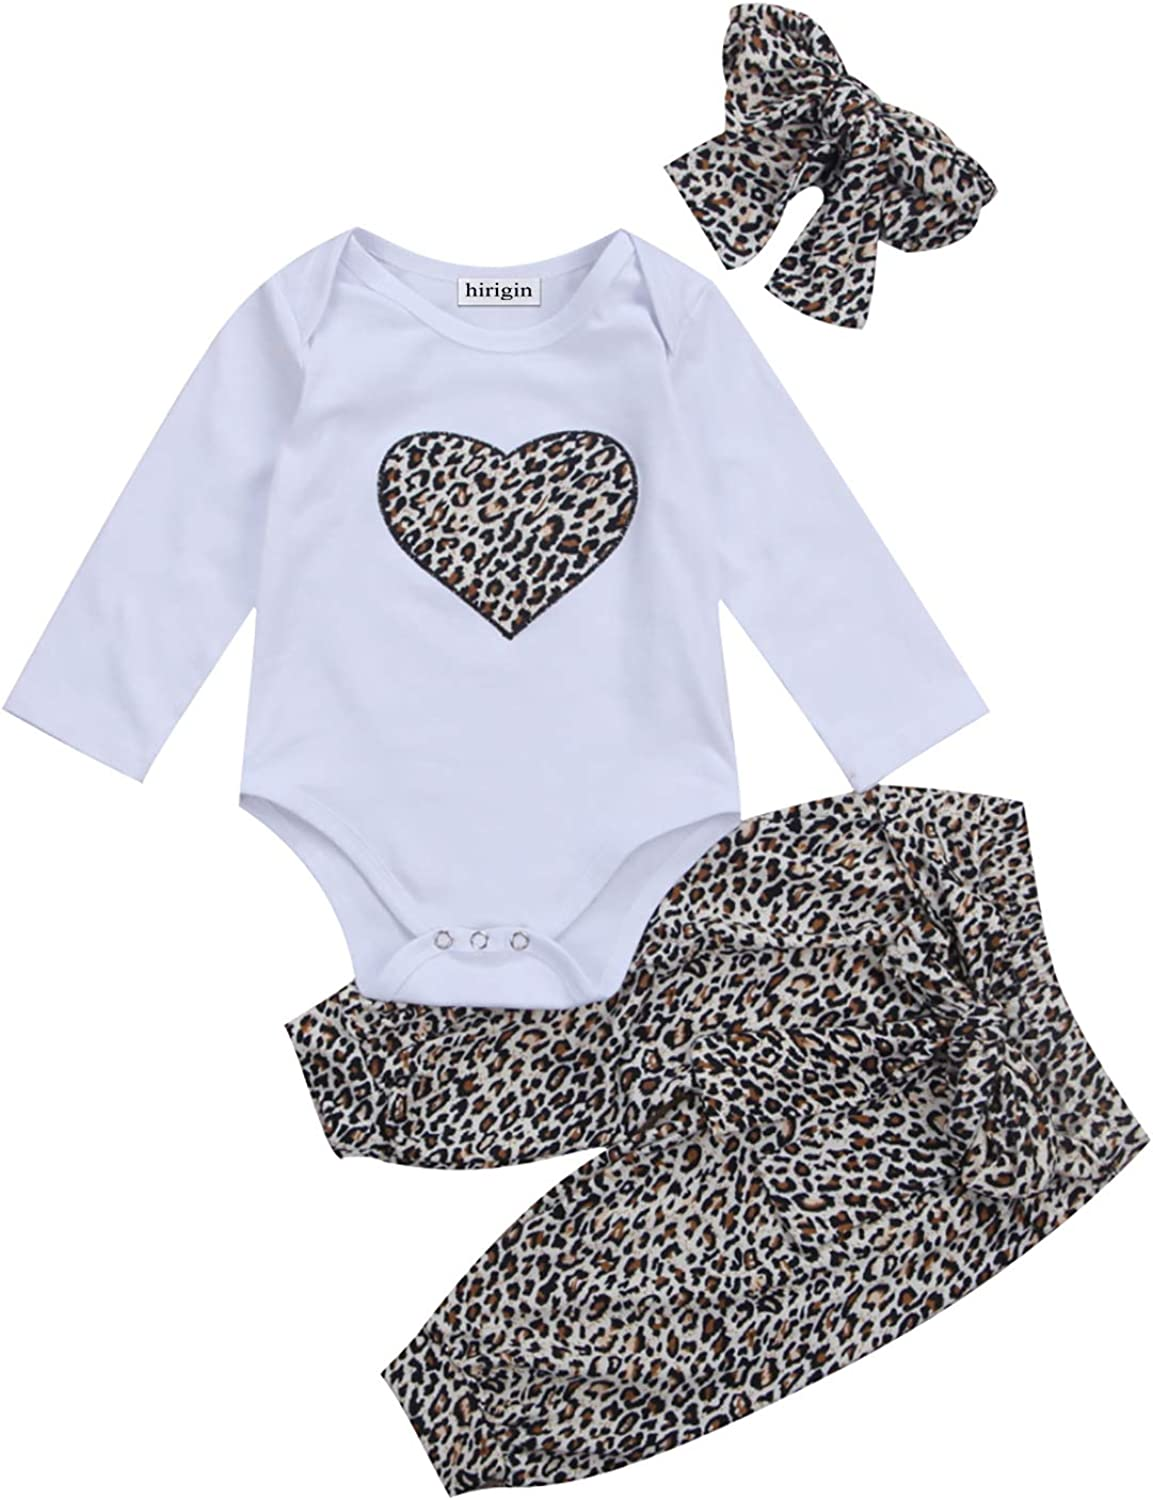 Carolilly Infant Toddler Baby Girl Clothes Set Heart Print Romper Jumpsuit Leopard Pants with Headband Outfit Set